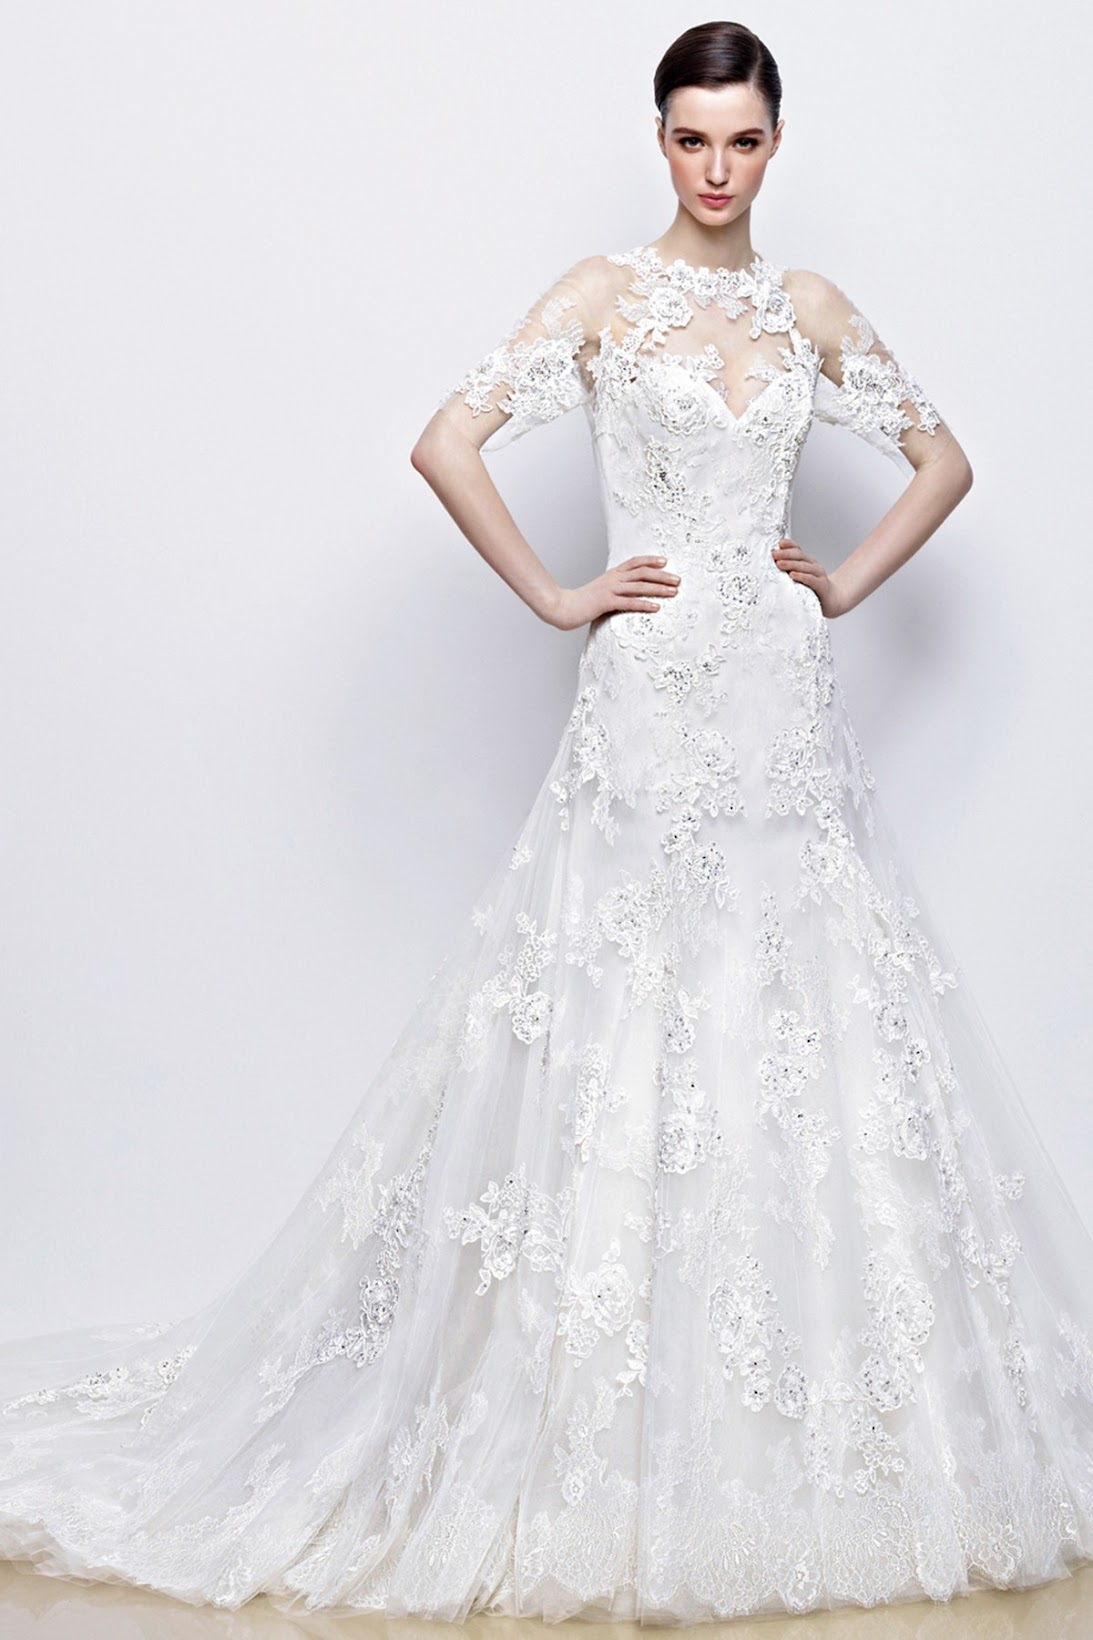 Charming Lace wedding dresses at Landybridal.co - Chamber of beauty